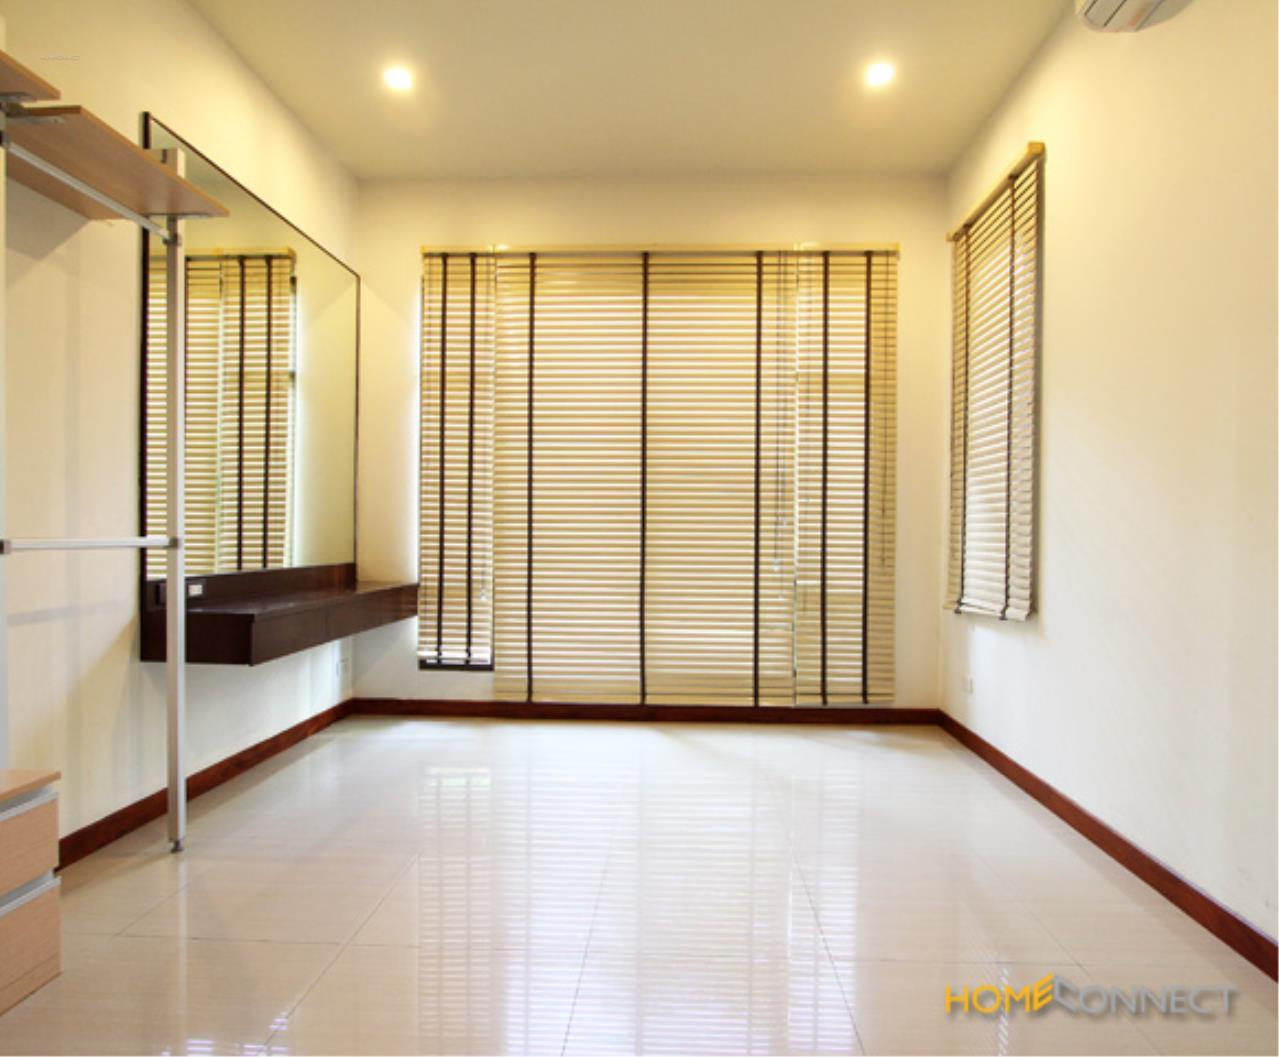 Home Connect Thailand Agency's Single House for rent in Suklhumvit 26  8